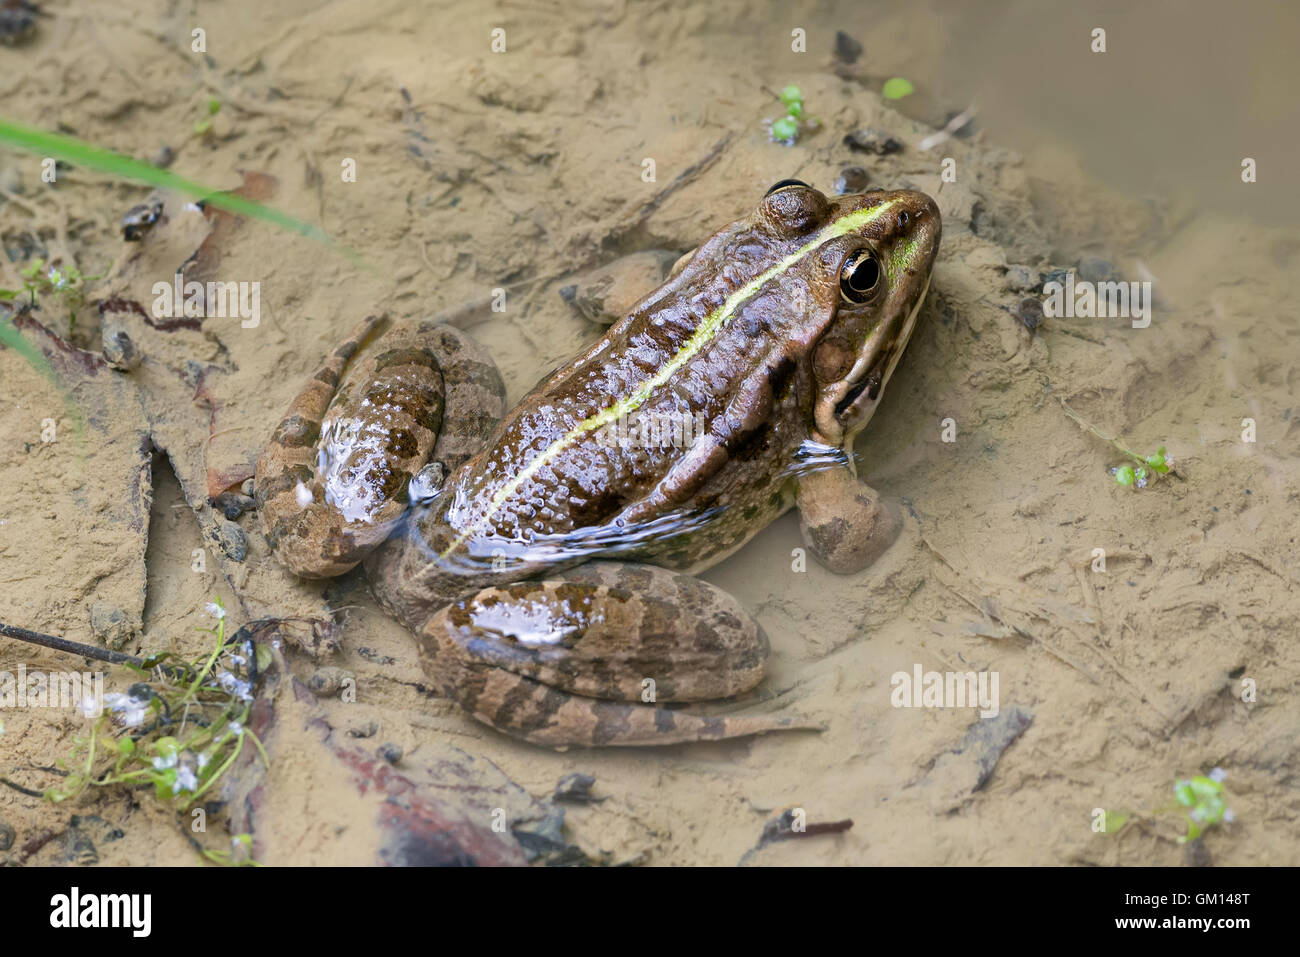 marsh frog pelophylax ridibunda in a puddle - Stock Image